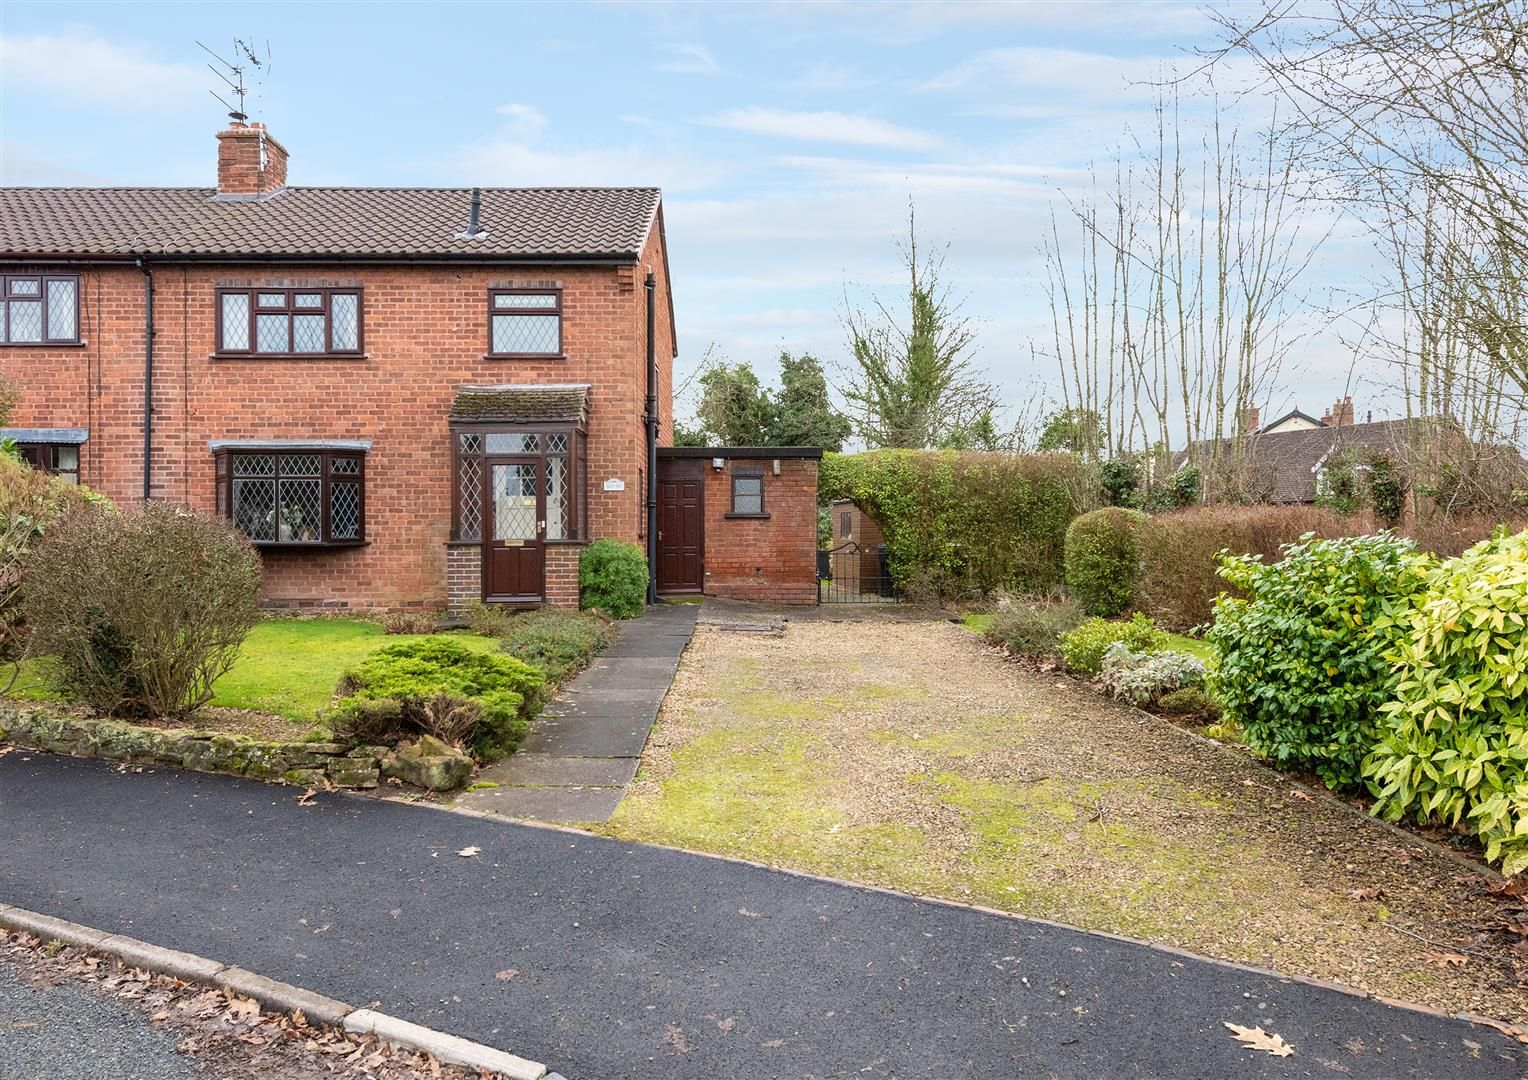 3 bed house for sale in Belbroughton  - Property Image 19